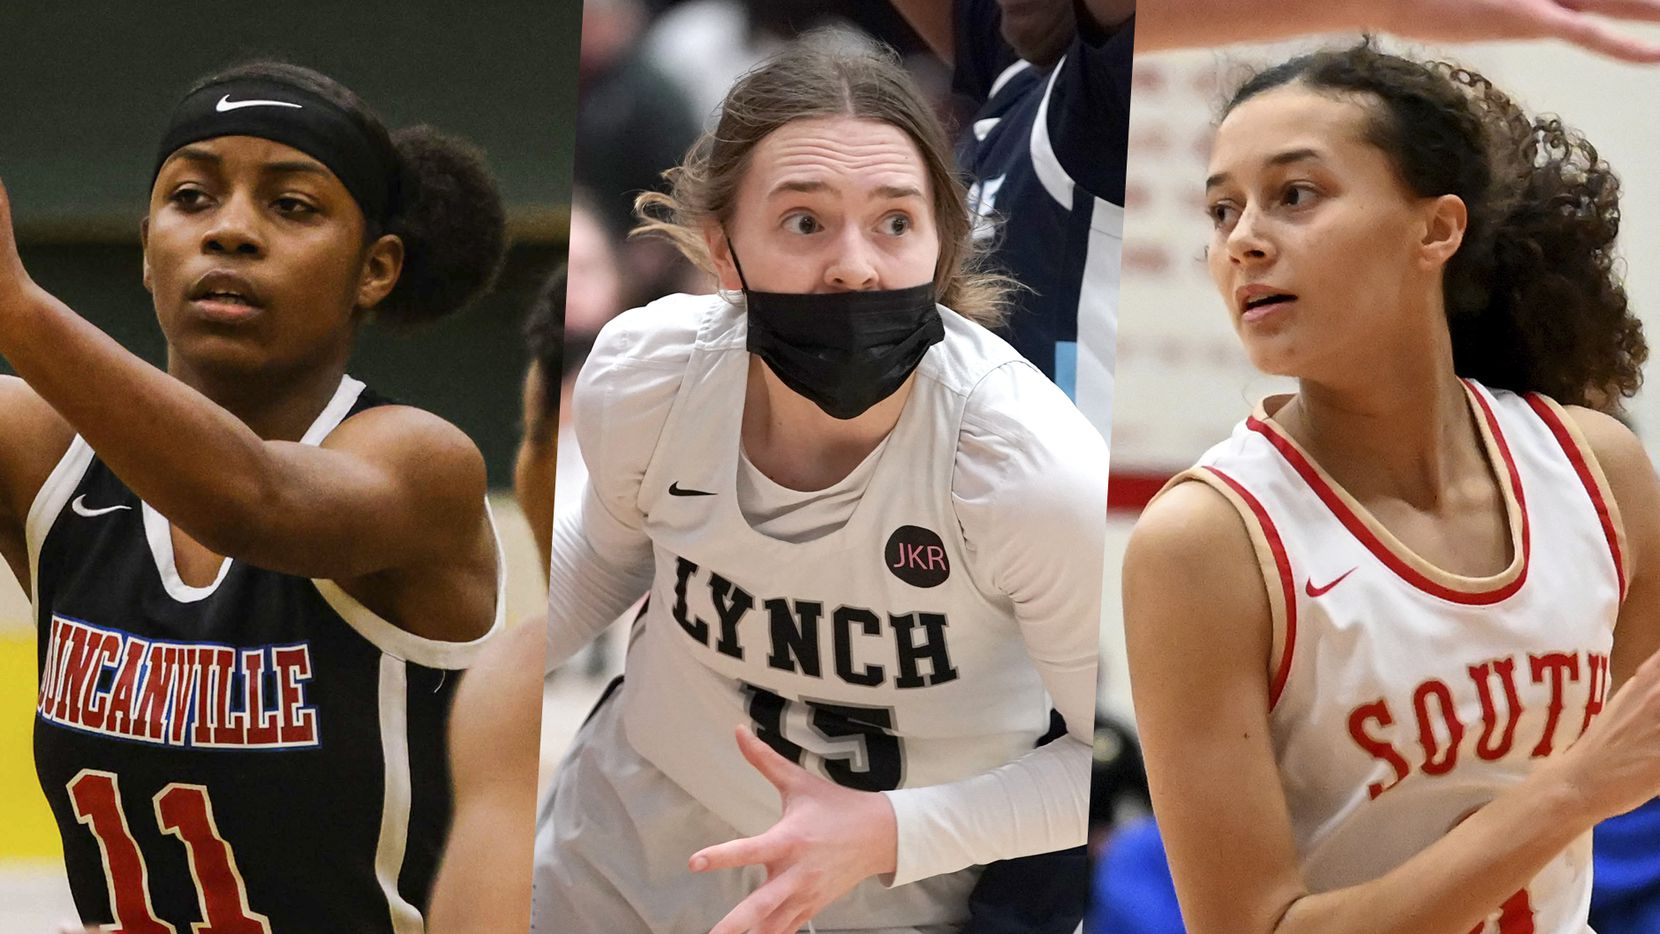 From left to right: Duncanville's Tristen Taylor. Bishop Lynch's Paige Bradley and South Grand Prairie's Kiara Jackson.